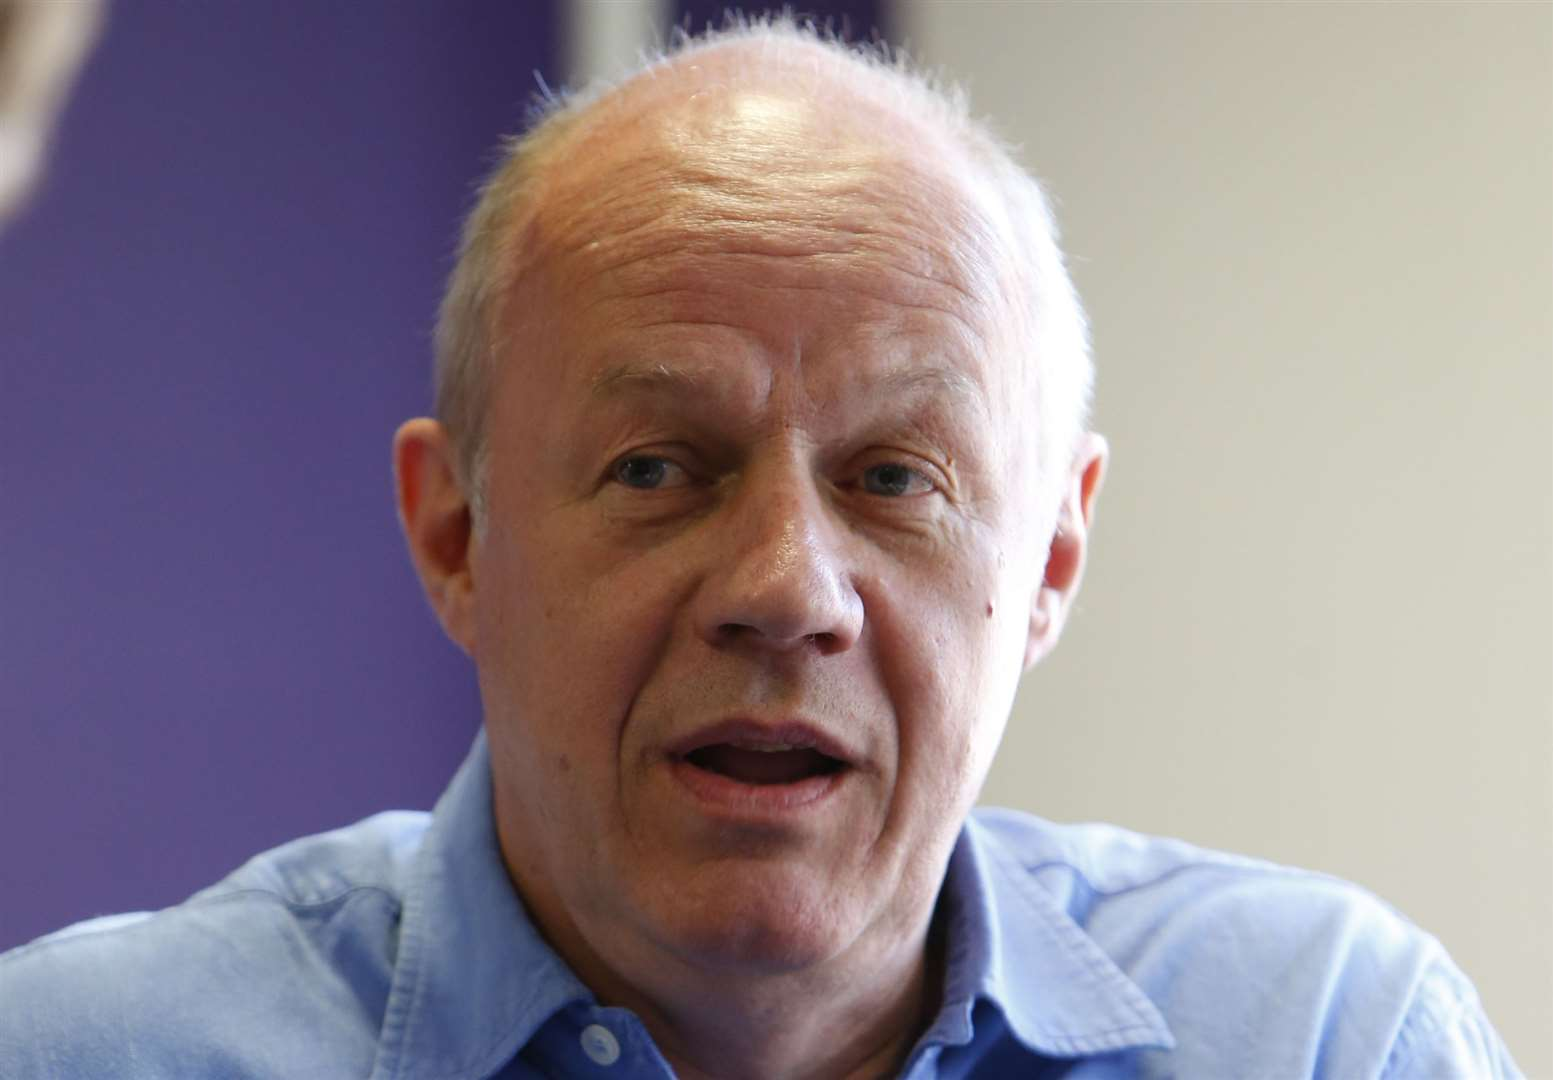 Ashford MP Damian Green says he has received complaints from residents about the lighting